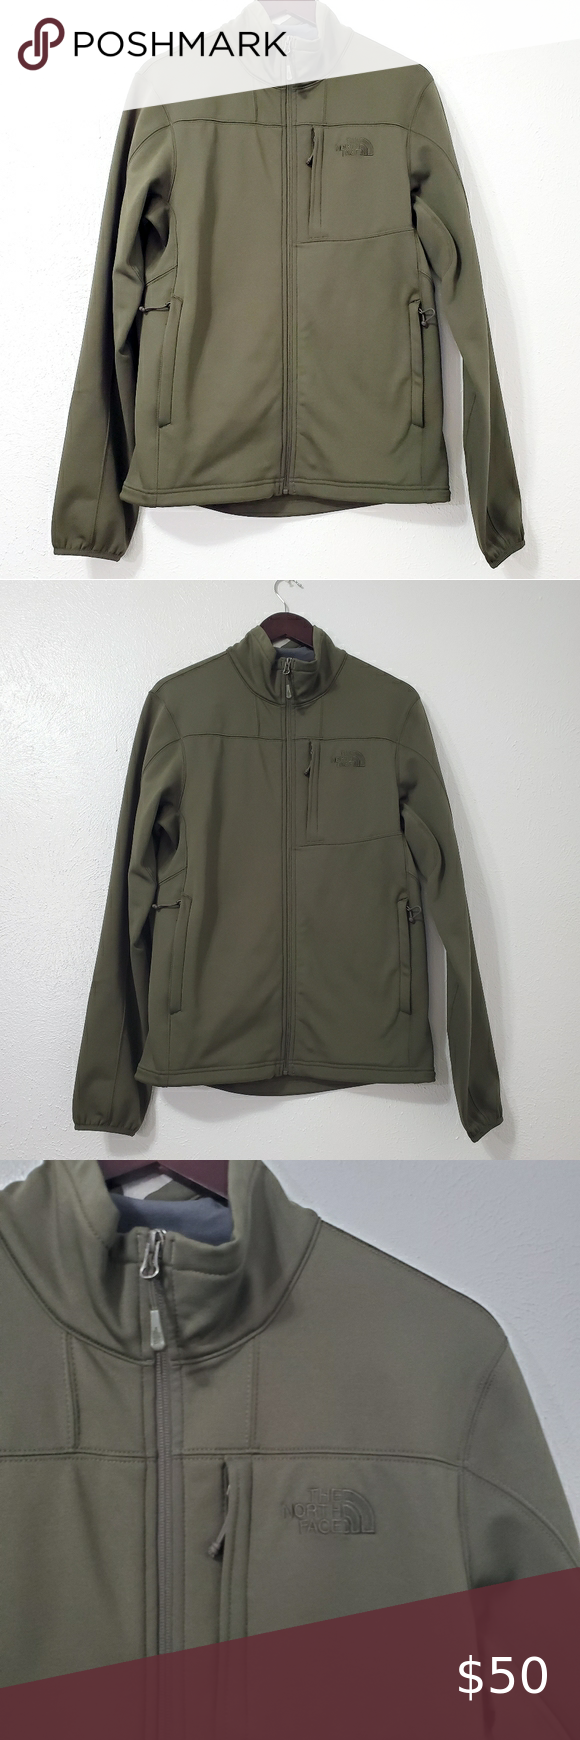 The North Face Men S Jacket Size Small North Face Jacket Mens North Face Mens Mens Olive Green Jacket [ 1740 x 580 Pixel ]